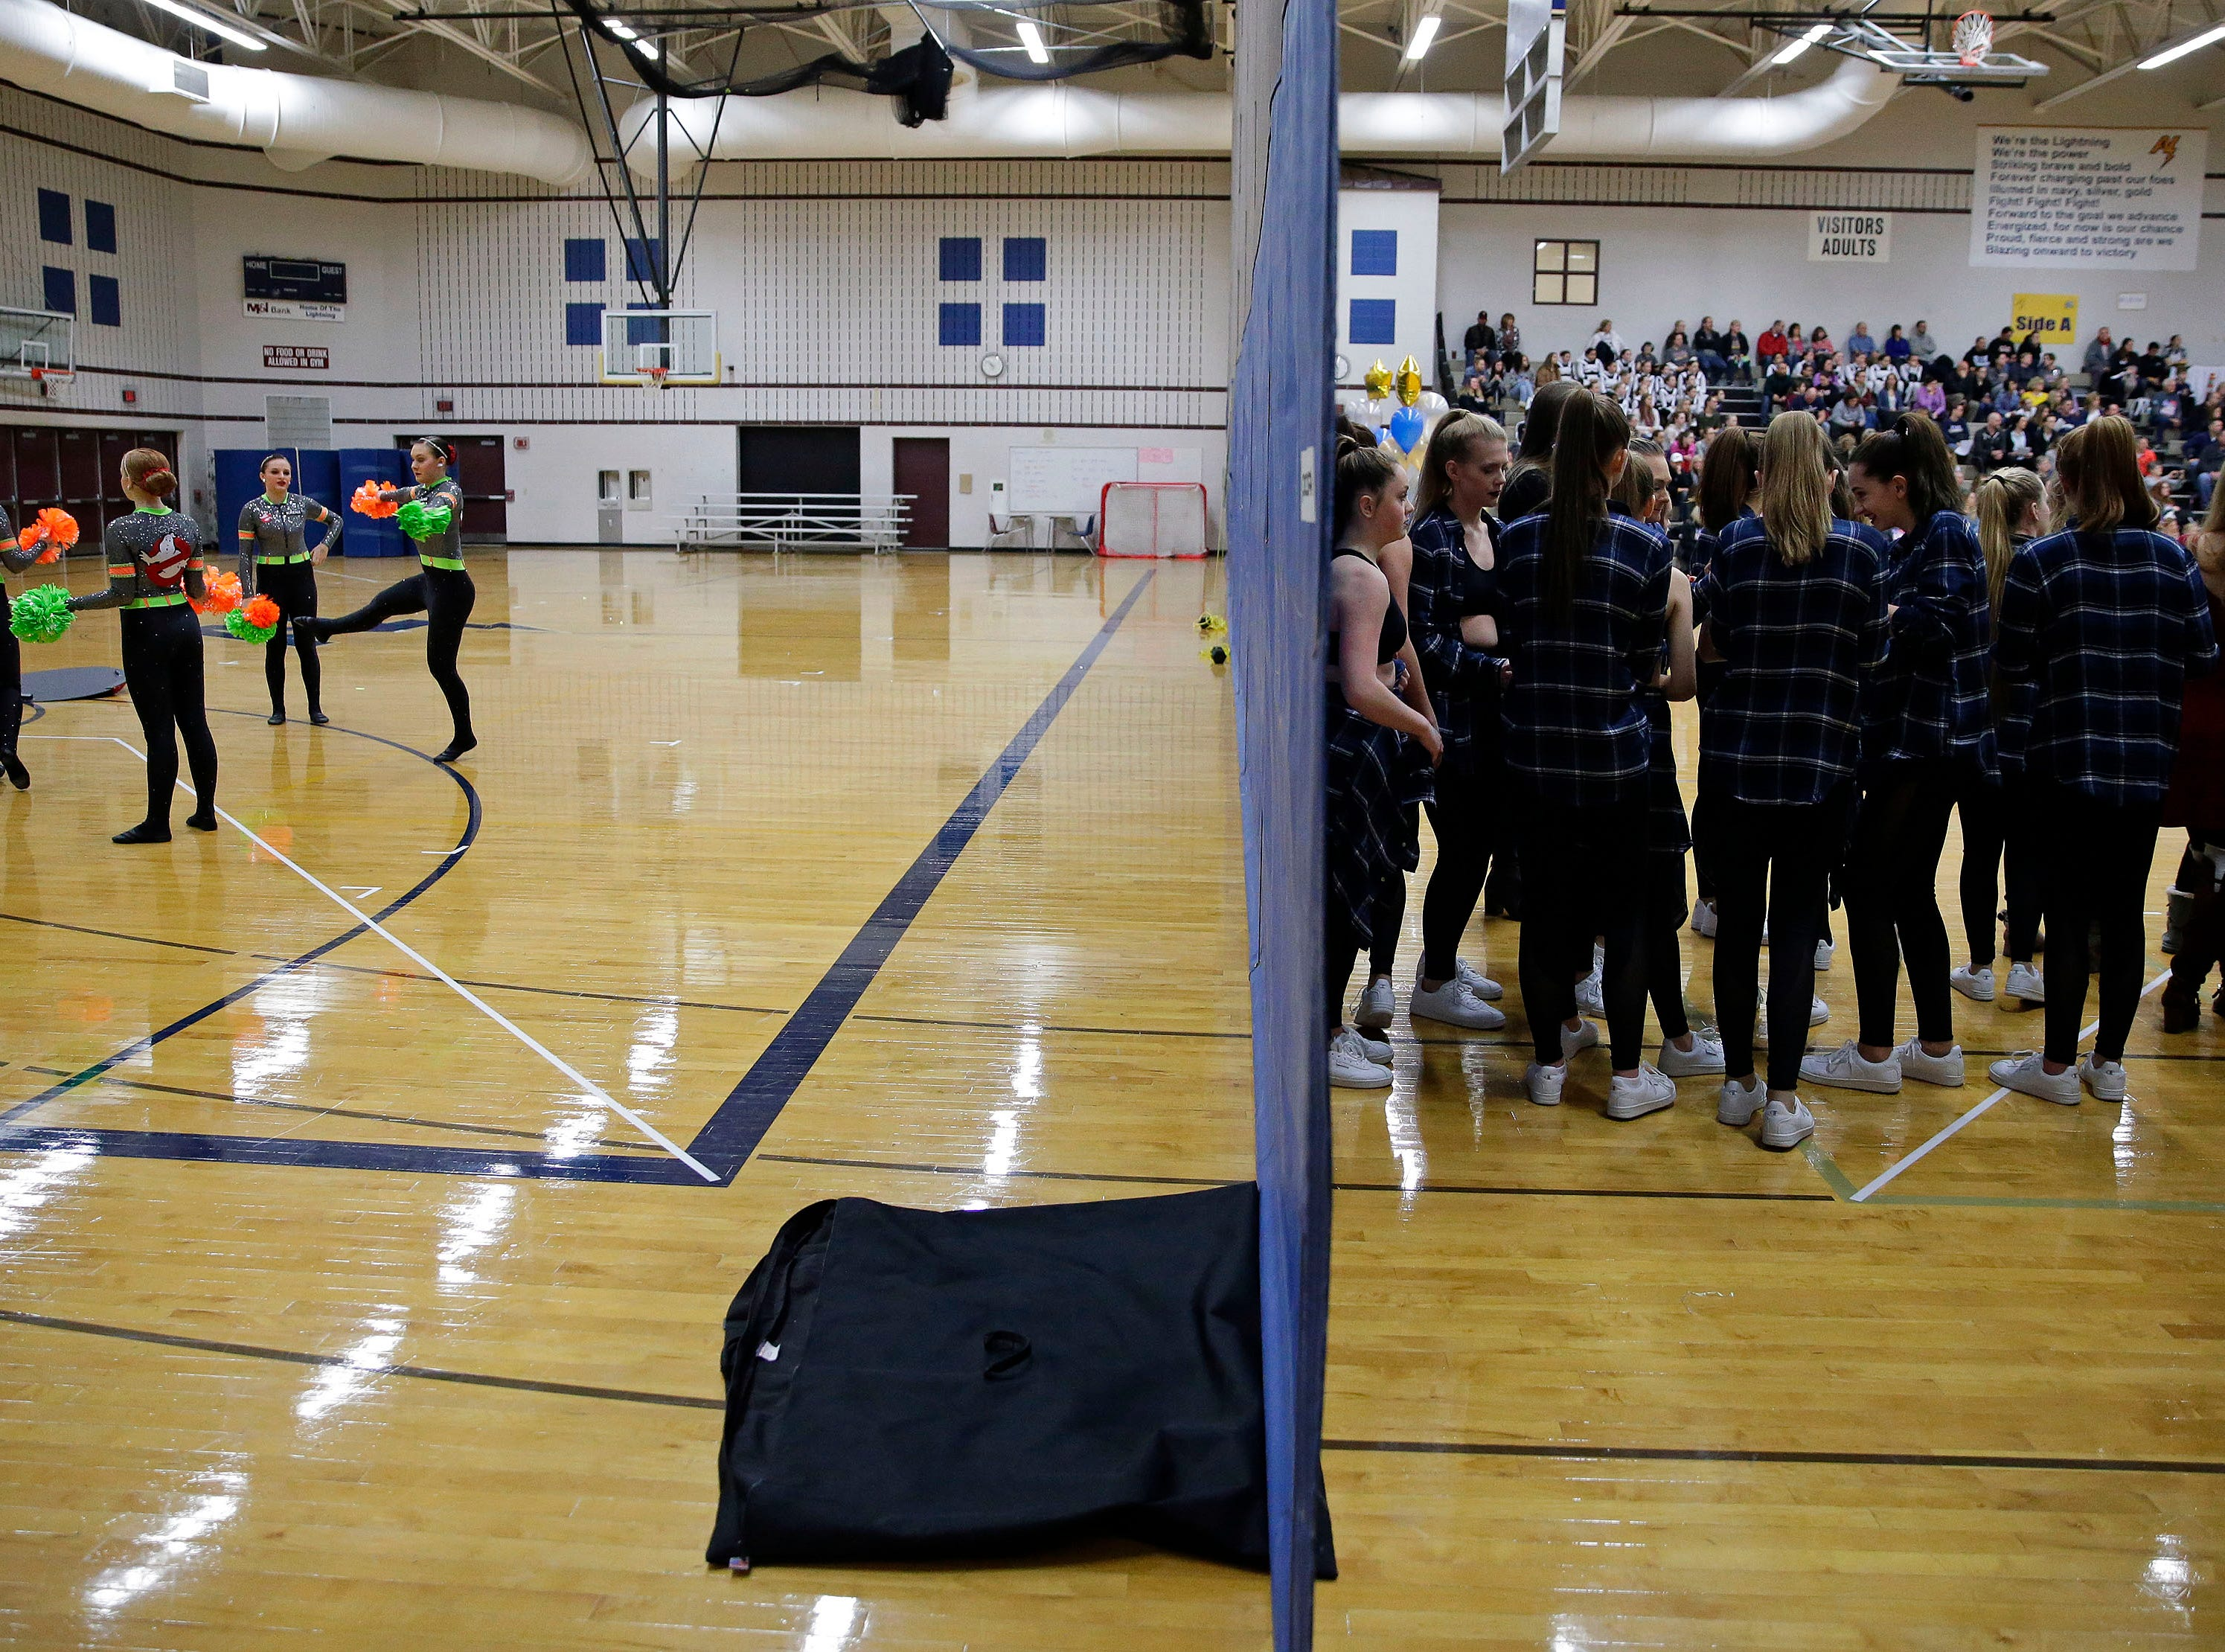 Teams warm-up on the left and are ready to take the floor on the right as the Lightning Bolt Explosion Cheer and Dance competition takes place Saturday, January 5, 2019, at Appleton North High School in Appleton, Wis.